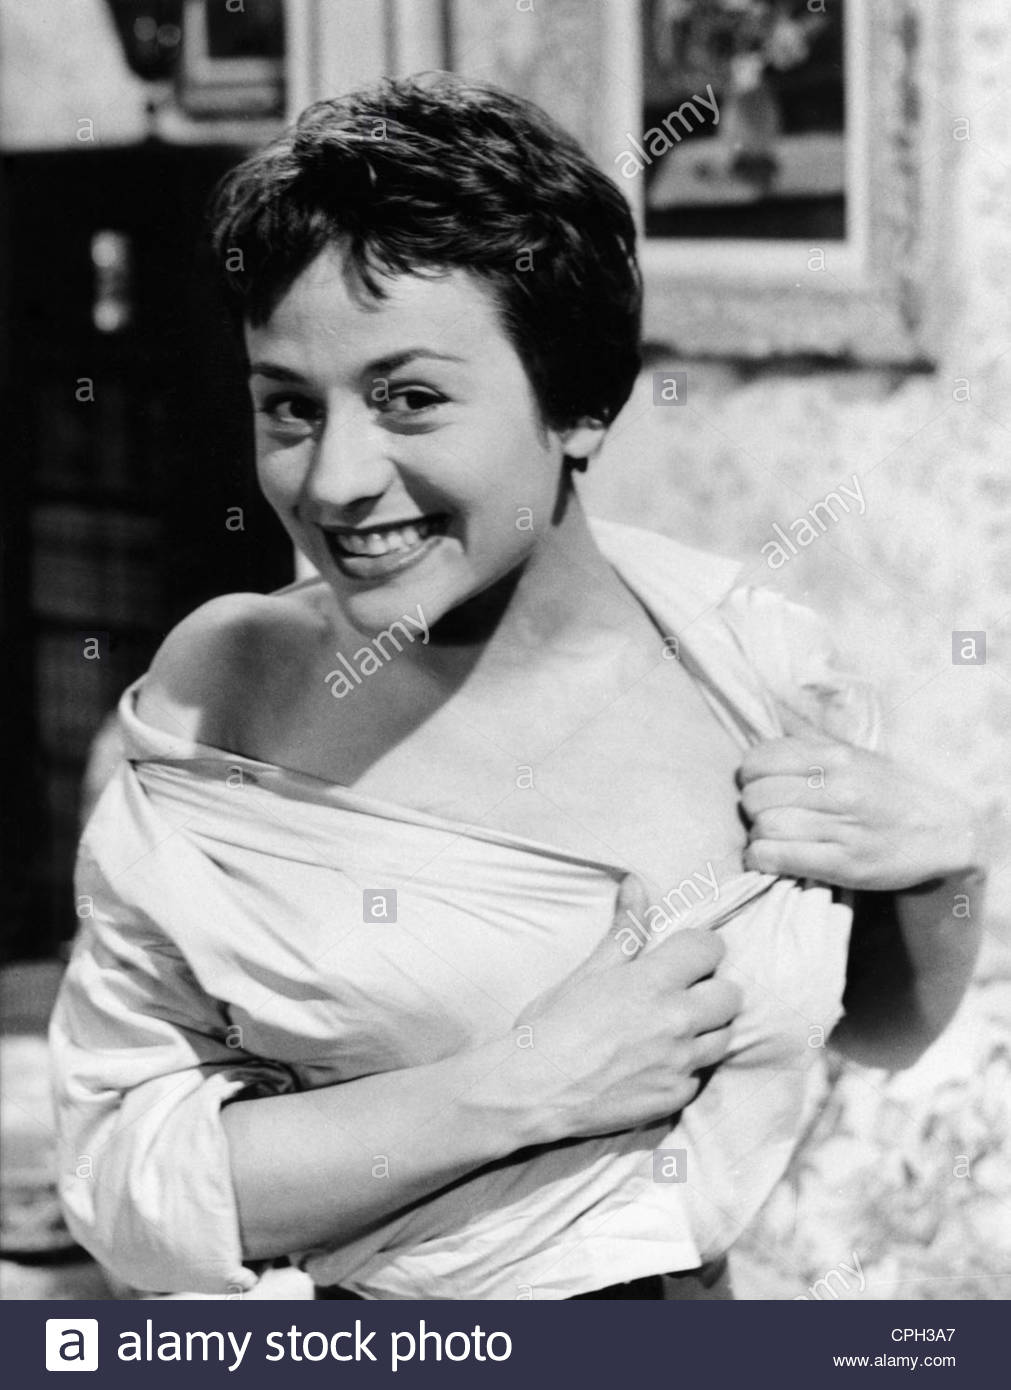 Girardot, Annie, 25.10.1931 - 28.2.2011, French actress, half length, to the movie 'The Man with the Golden - Stock Image